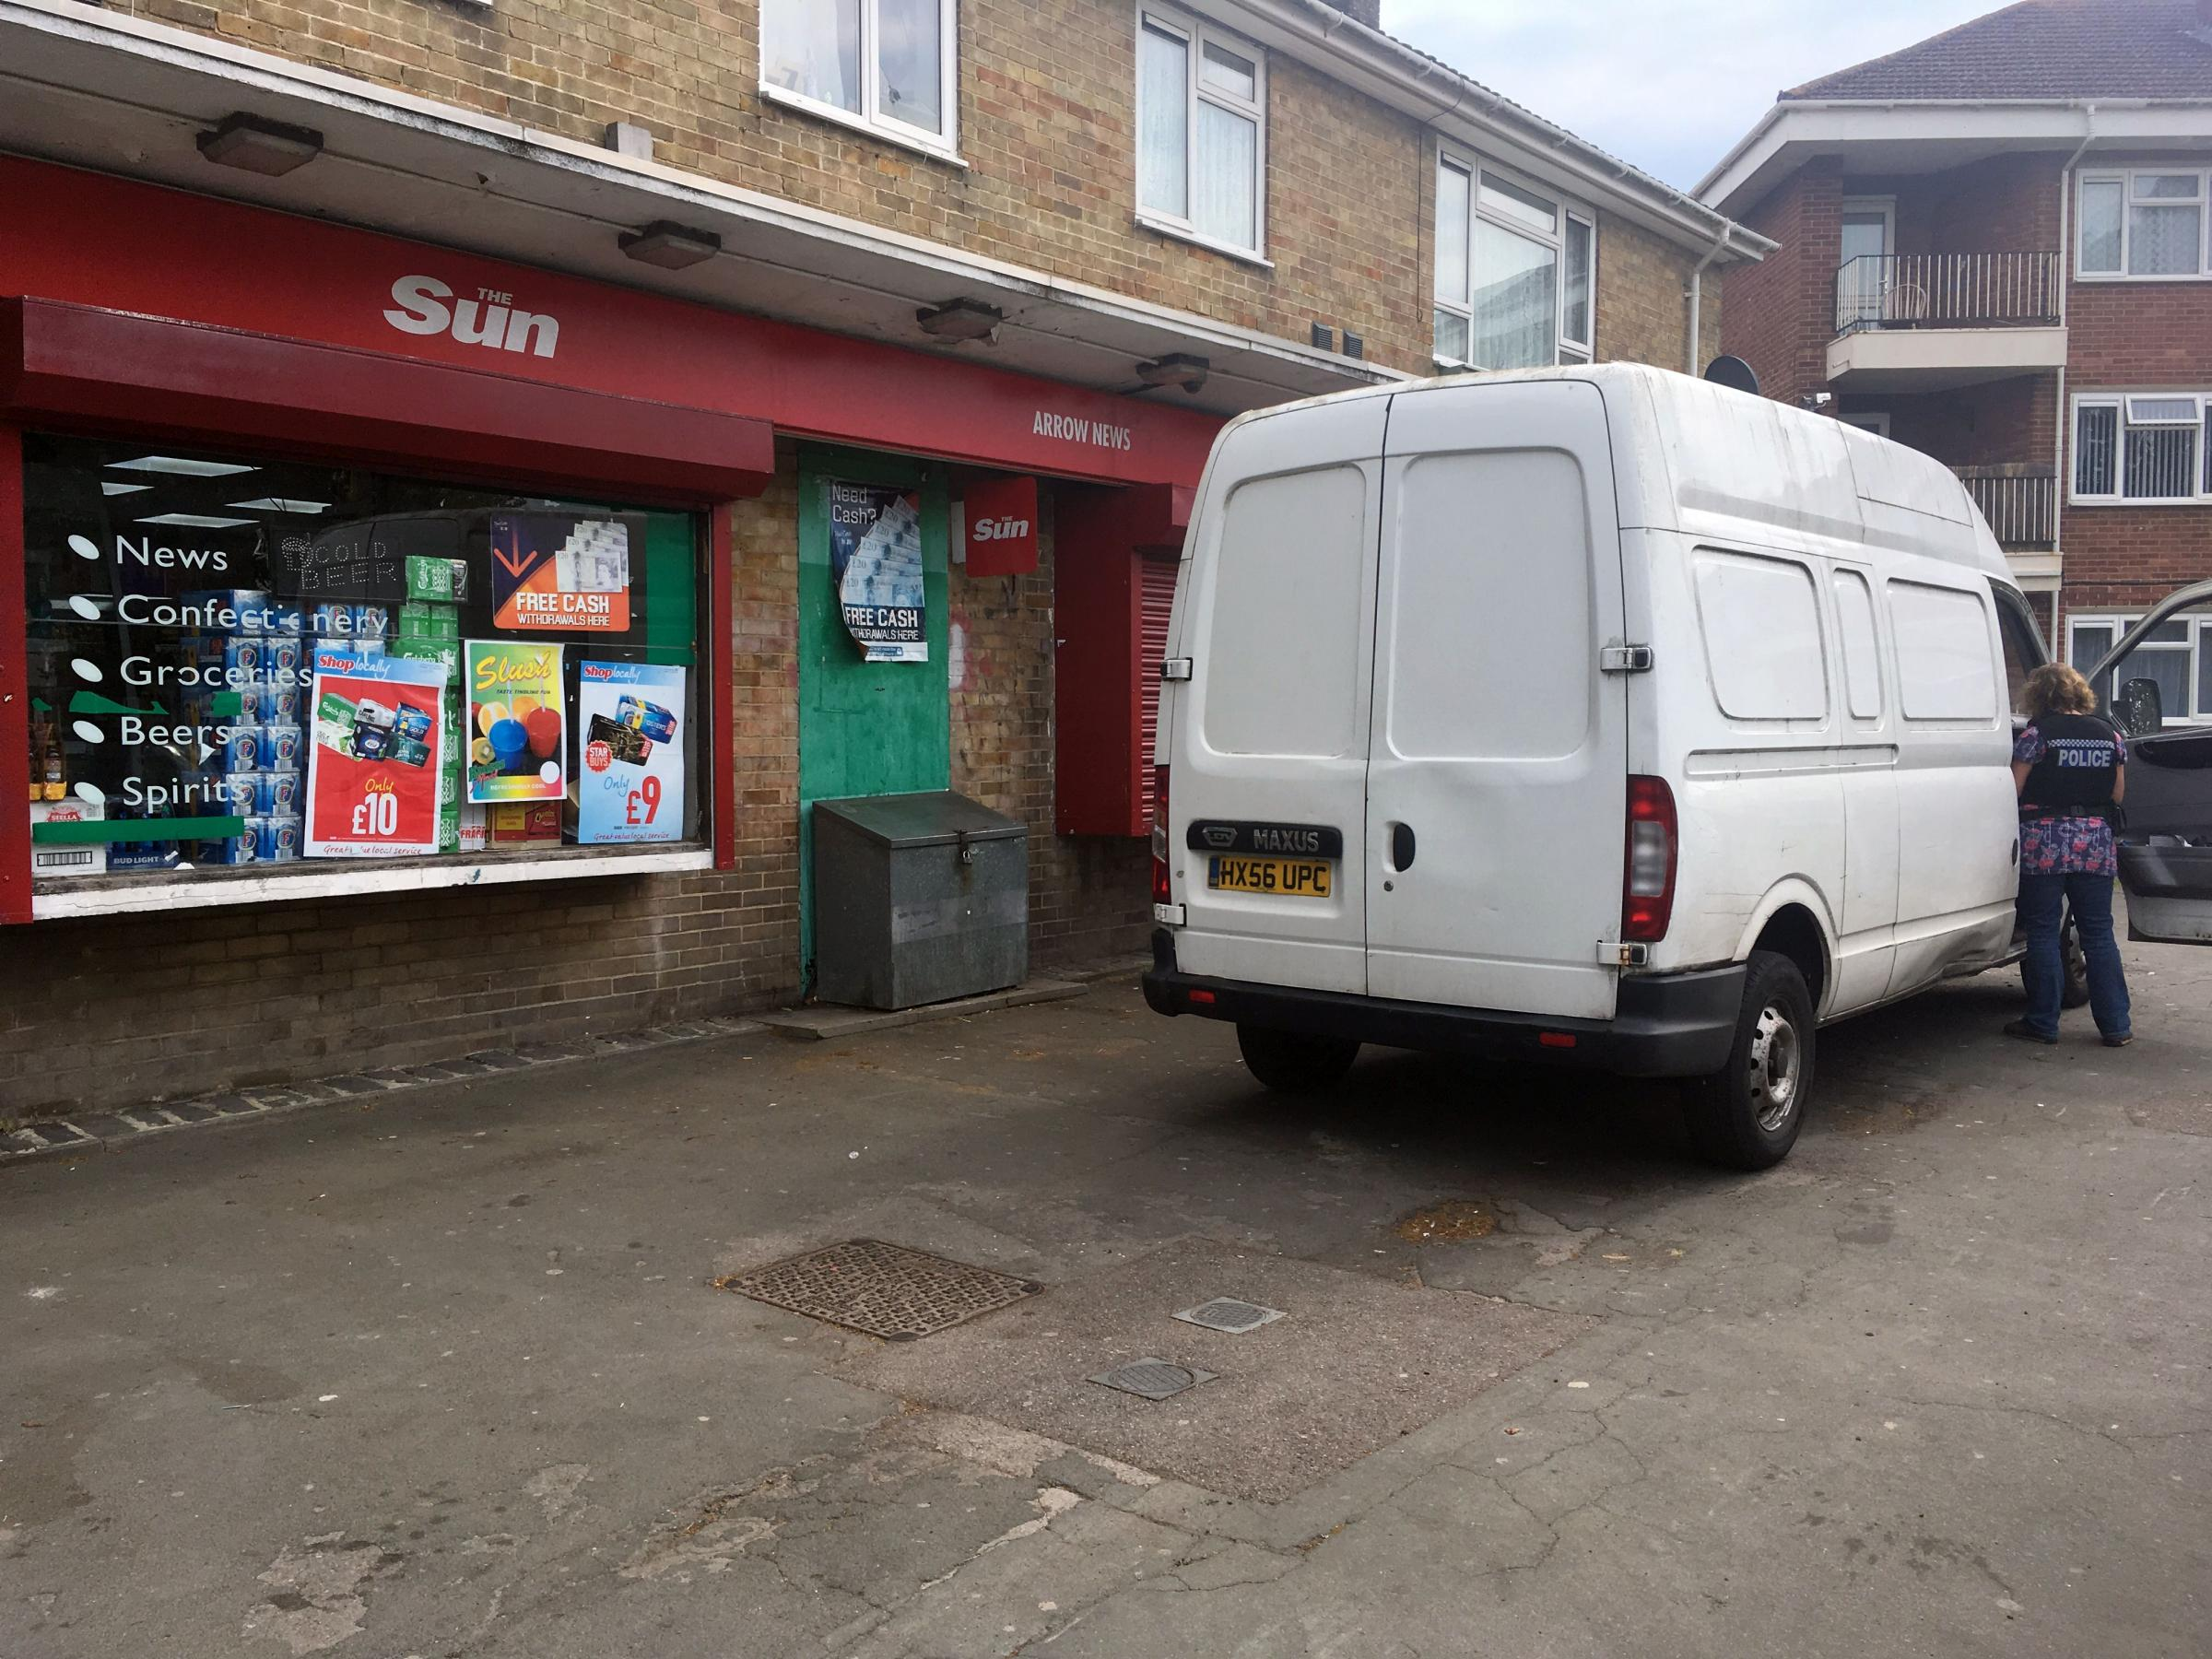 Police inspect a van outside the shop